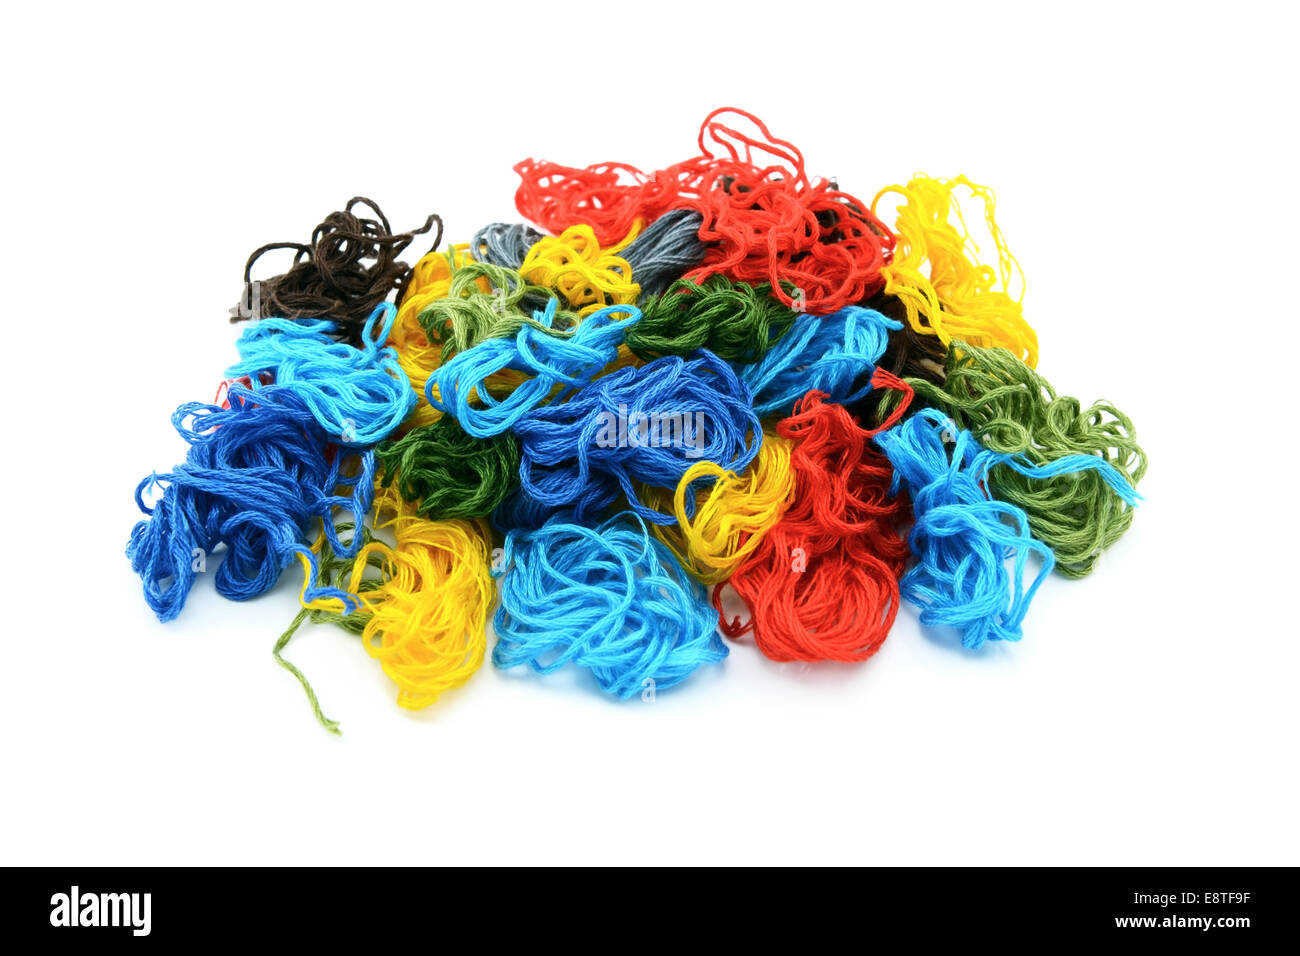 Assorted colourful embroidery threads in a heap, isolated on a white background - Stock Image